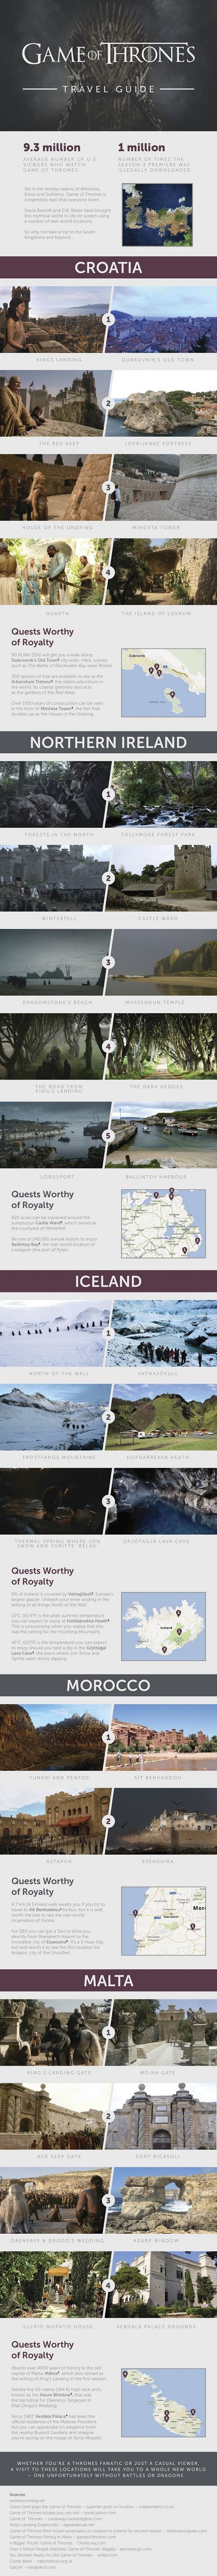 your game of thrones travel guide (infographic)  ..it would be cool if down the road, after the series wraps, they would create a got-location tour. something akin to what they do for lotr in new zealand. it could get creative quickly. possibly asoiaf themed food/music/decor on the ship...guides dressed as people from that world etc. i would totally get my geek on.